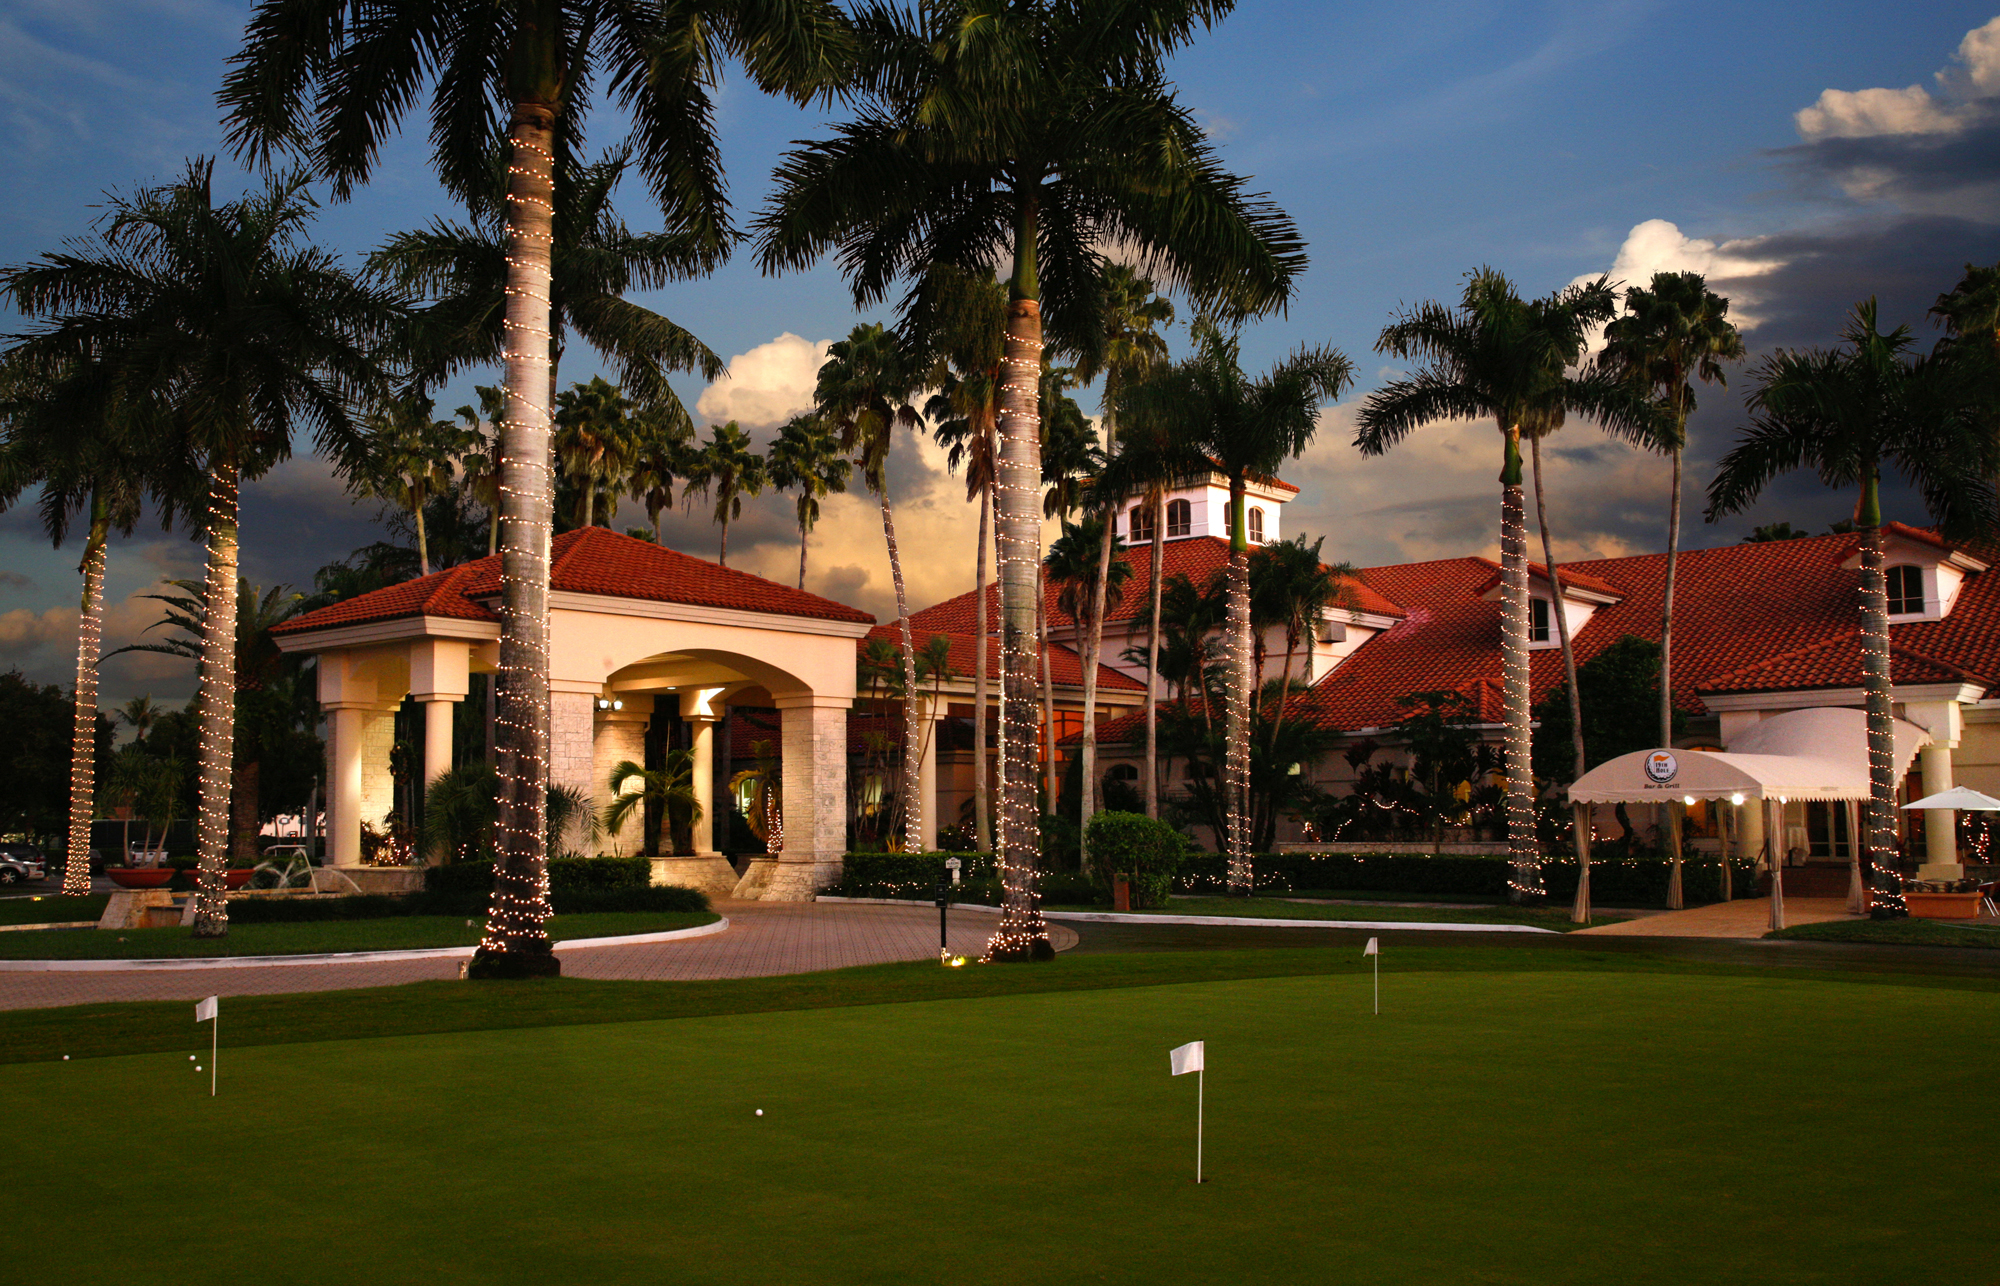 Home To The World Golf Championships Cadillac Championship